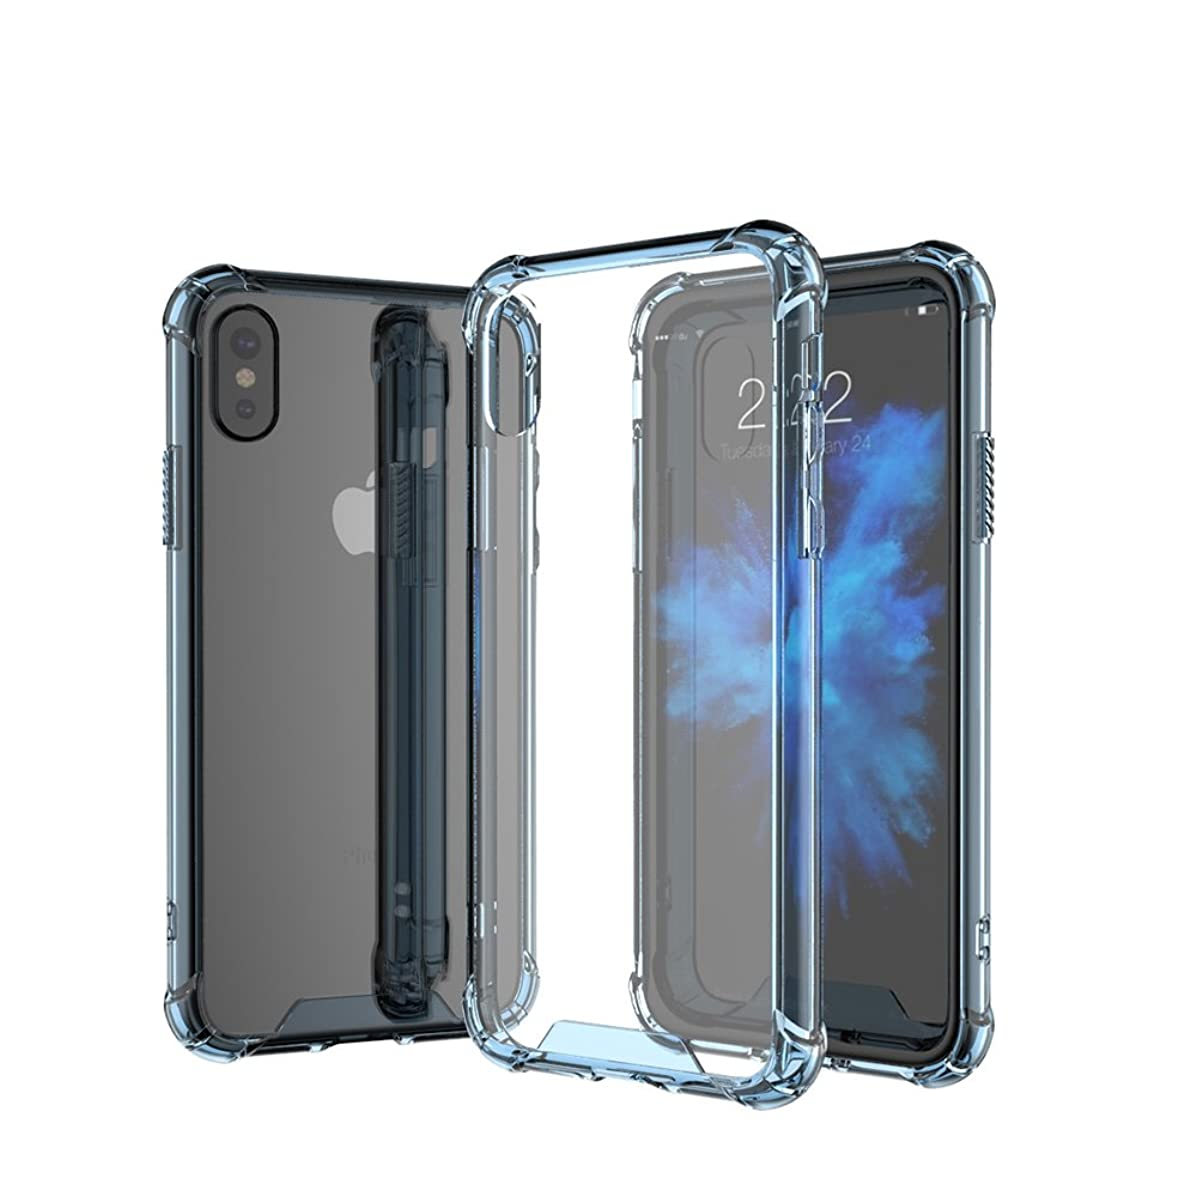 Transparent Clear iPhone X case,Soft Flexible Ultra Thin TPU with Colored Bumper Protective Cover for Apple iPhone 10 Case Support Wireless Charging by Ontrip (Blue)